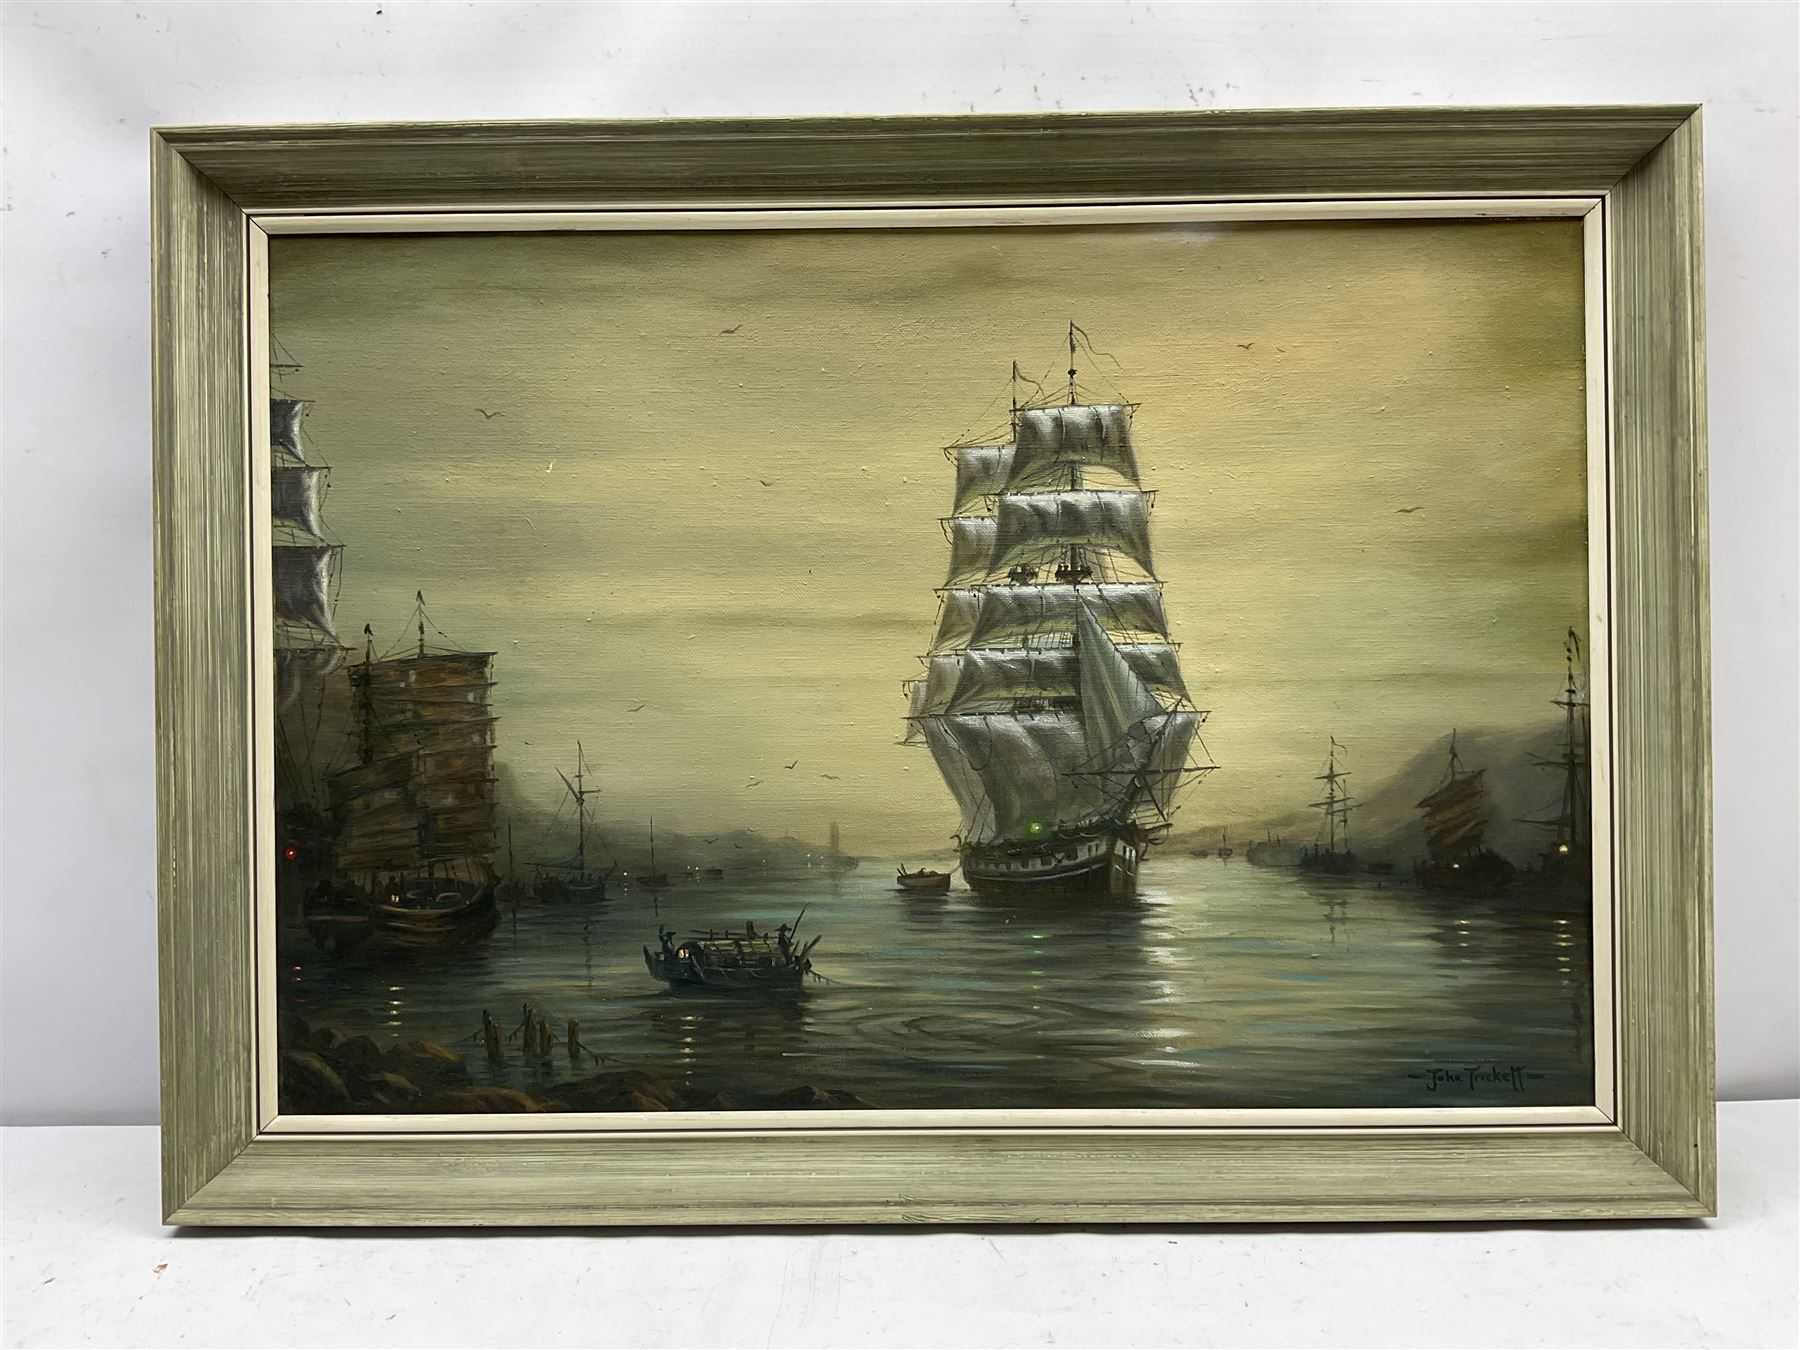 John Trickett (British 1952-): 'Evening Calm' - A Tea Clipper in the Anchorage Foochow - Image 2 of 4